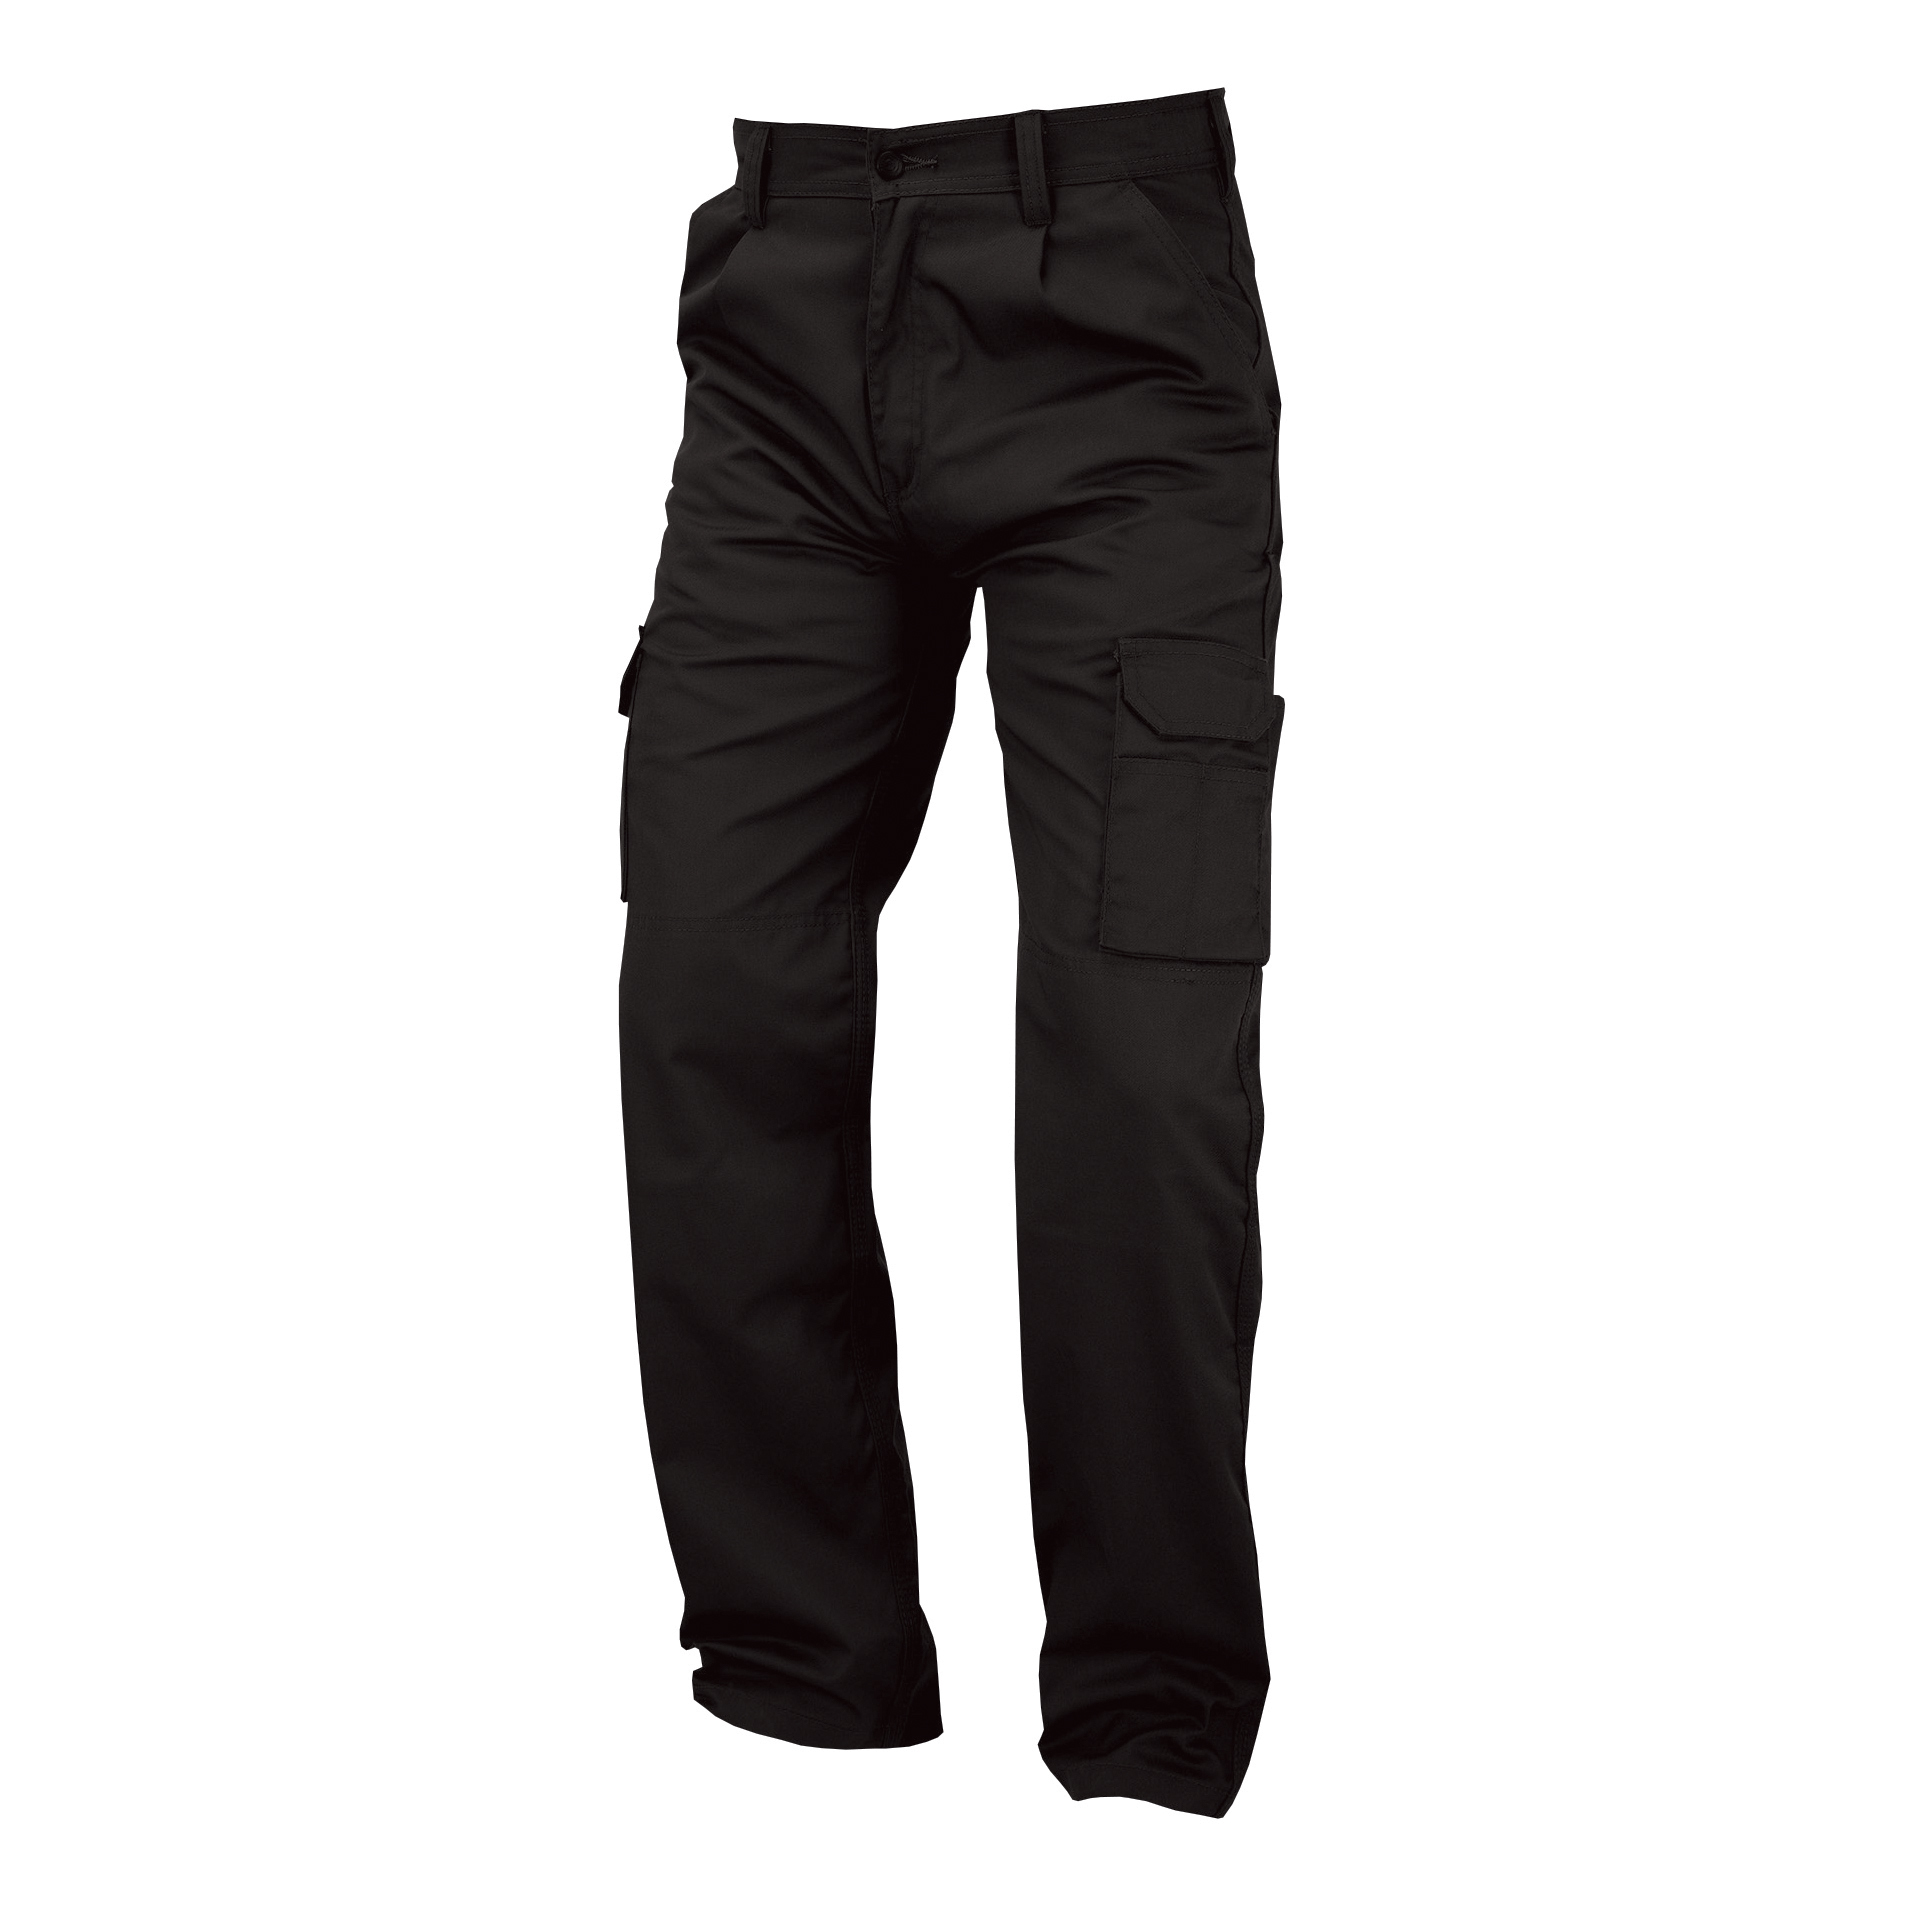 Business Kneepad Combat Trouser Multi-functional Waist 46in Leg 29in Black